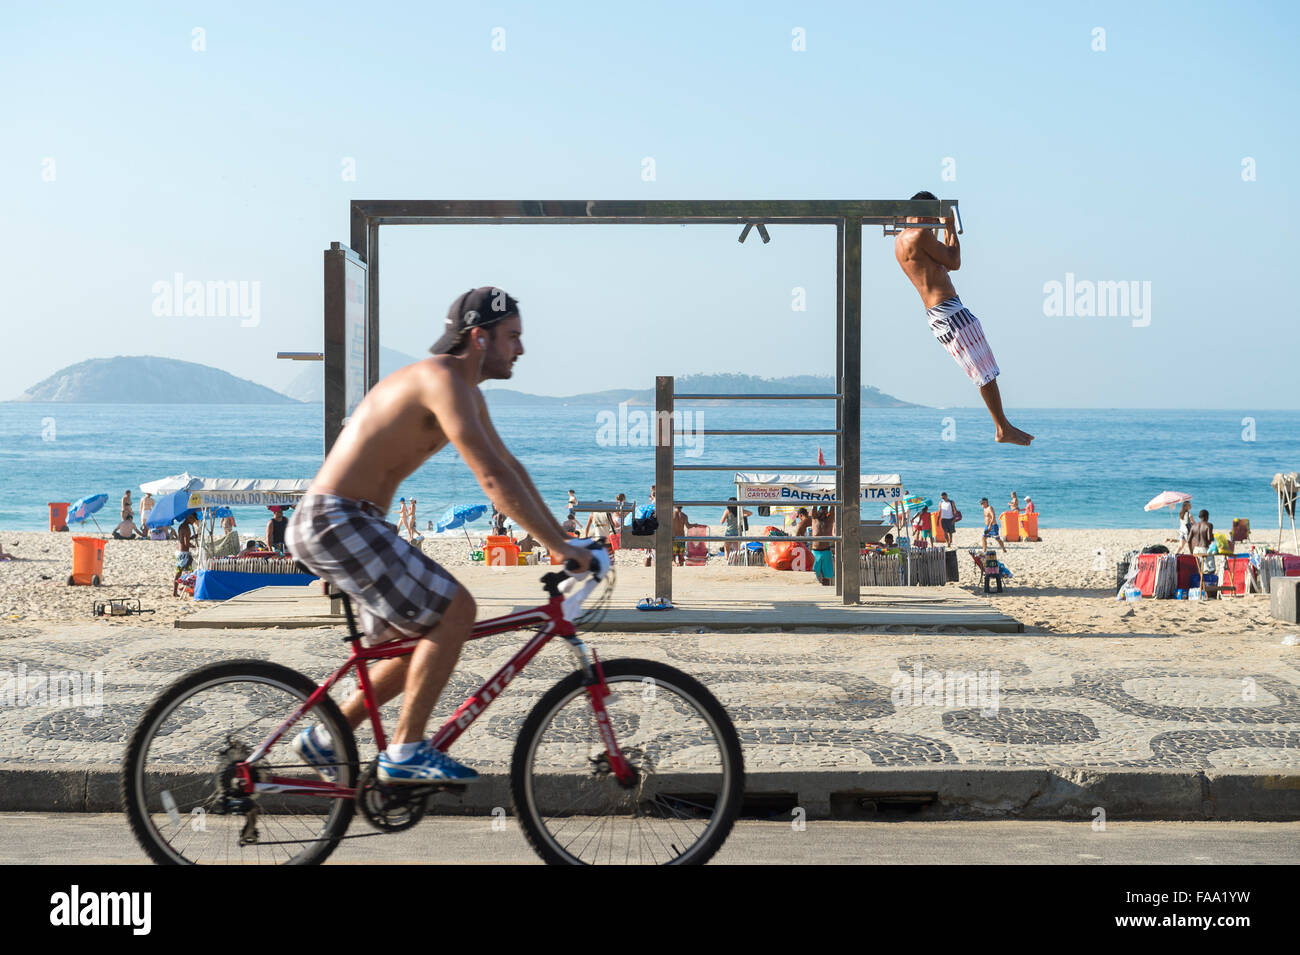 RIO DE JANEIRO, BRAZIL - FEBRUARY 22, 2015: A cyclist passes a young man utilizing an outdoor fitness station in - Stock Image